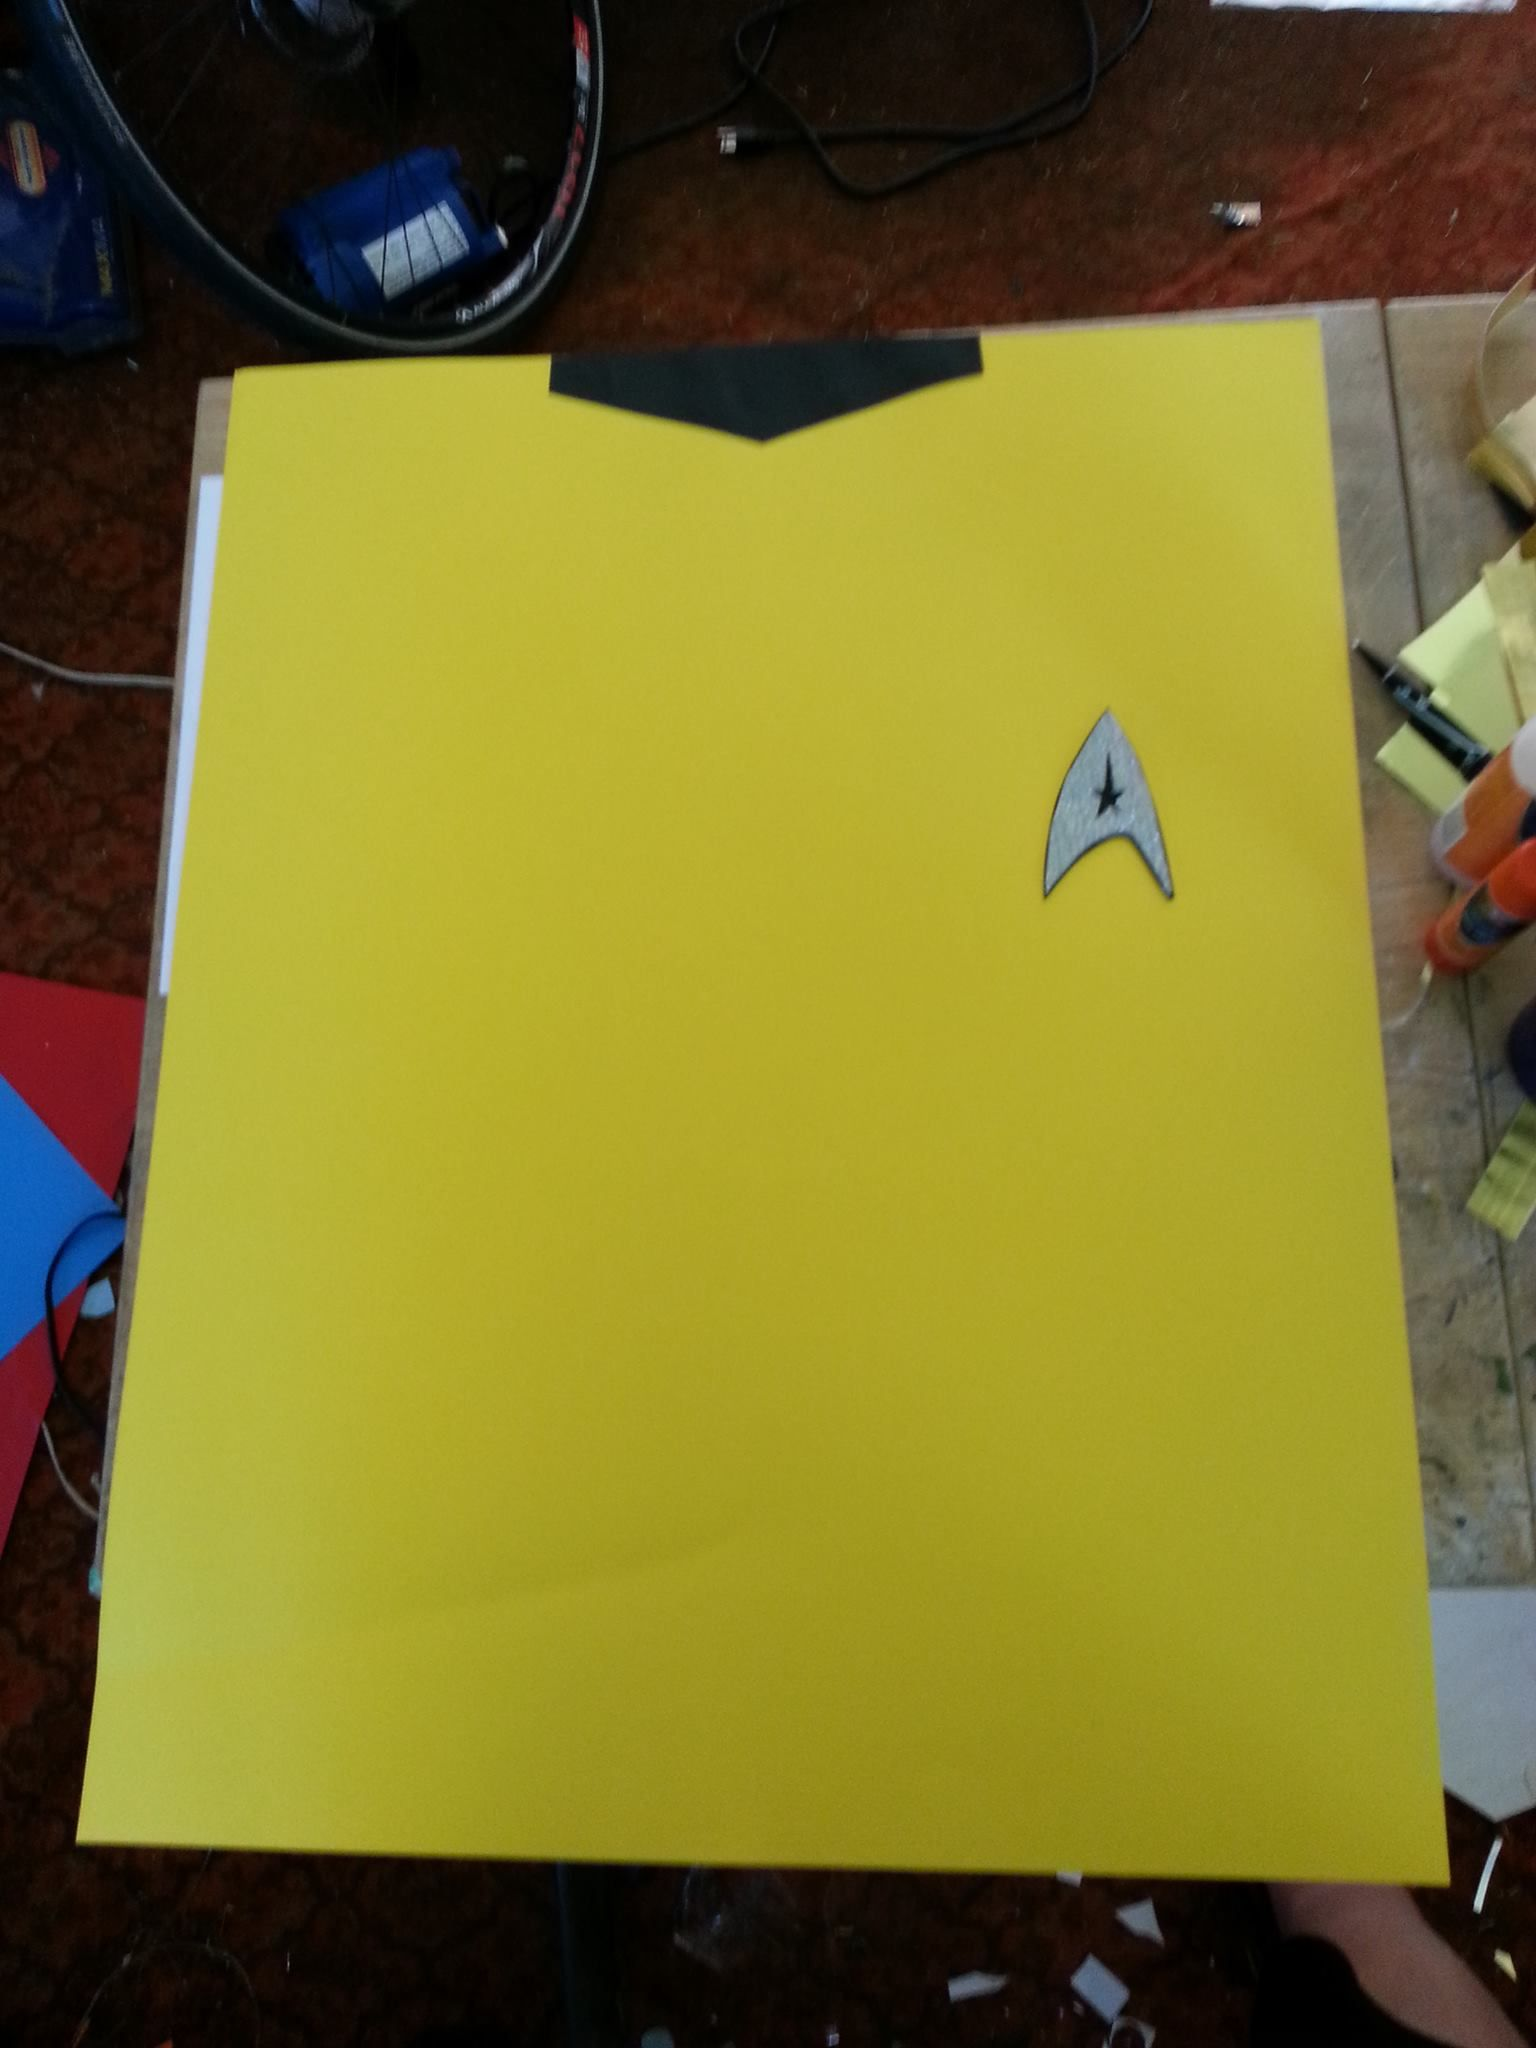 Star Trek Posters for my son's birthday party.